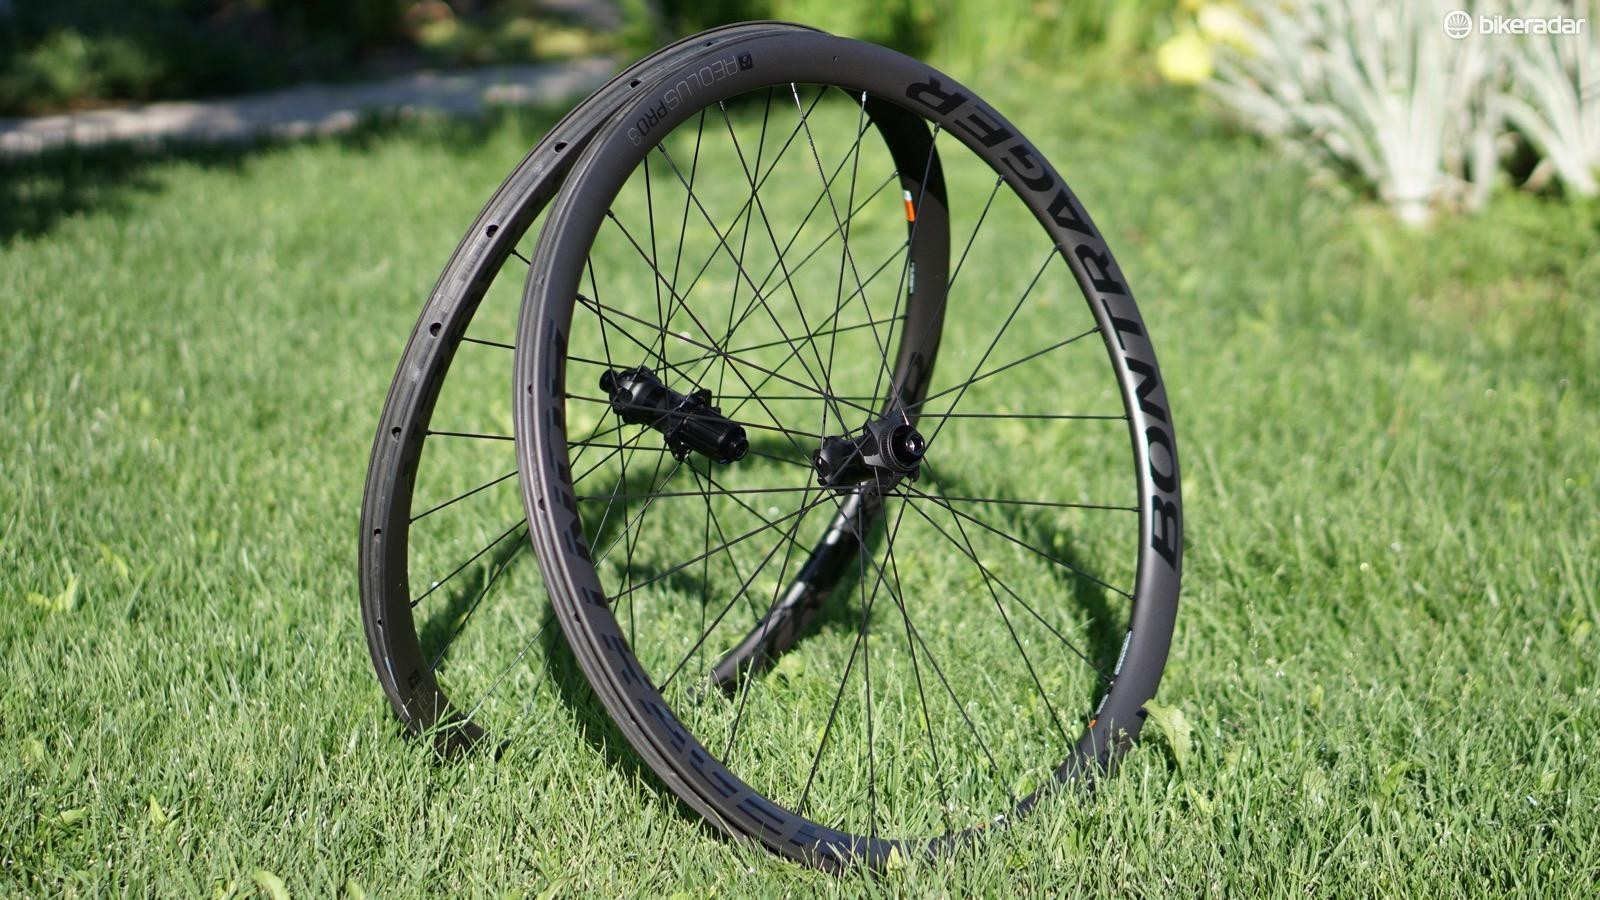 Bontrager Aeolus Pro 3 carbon tubeless wheel are quite competitive on price and weight